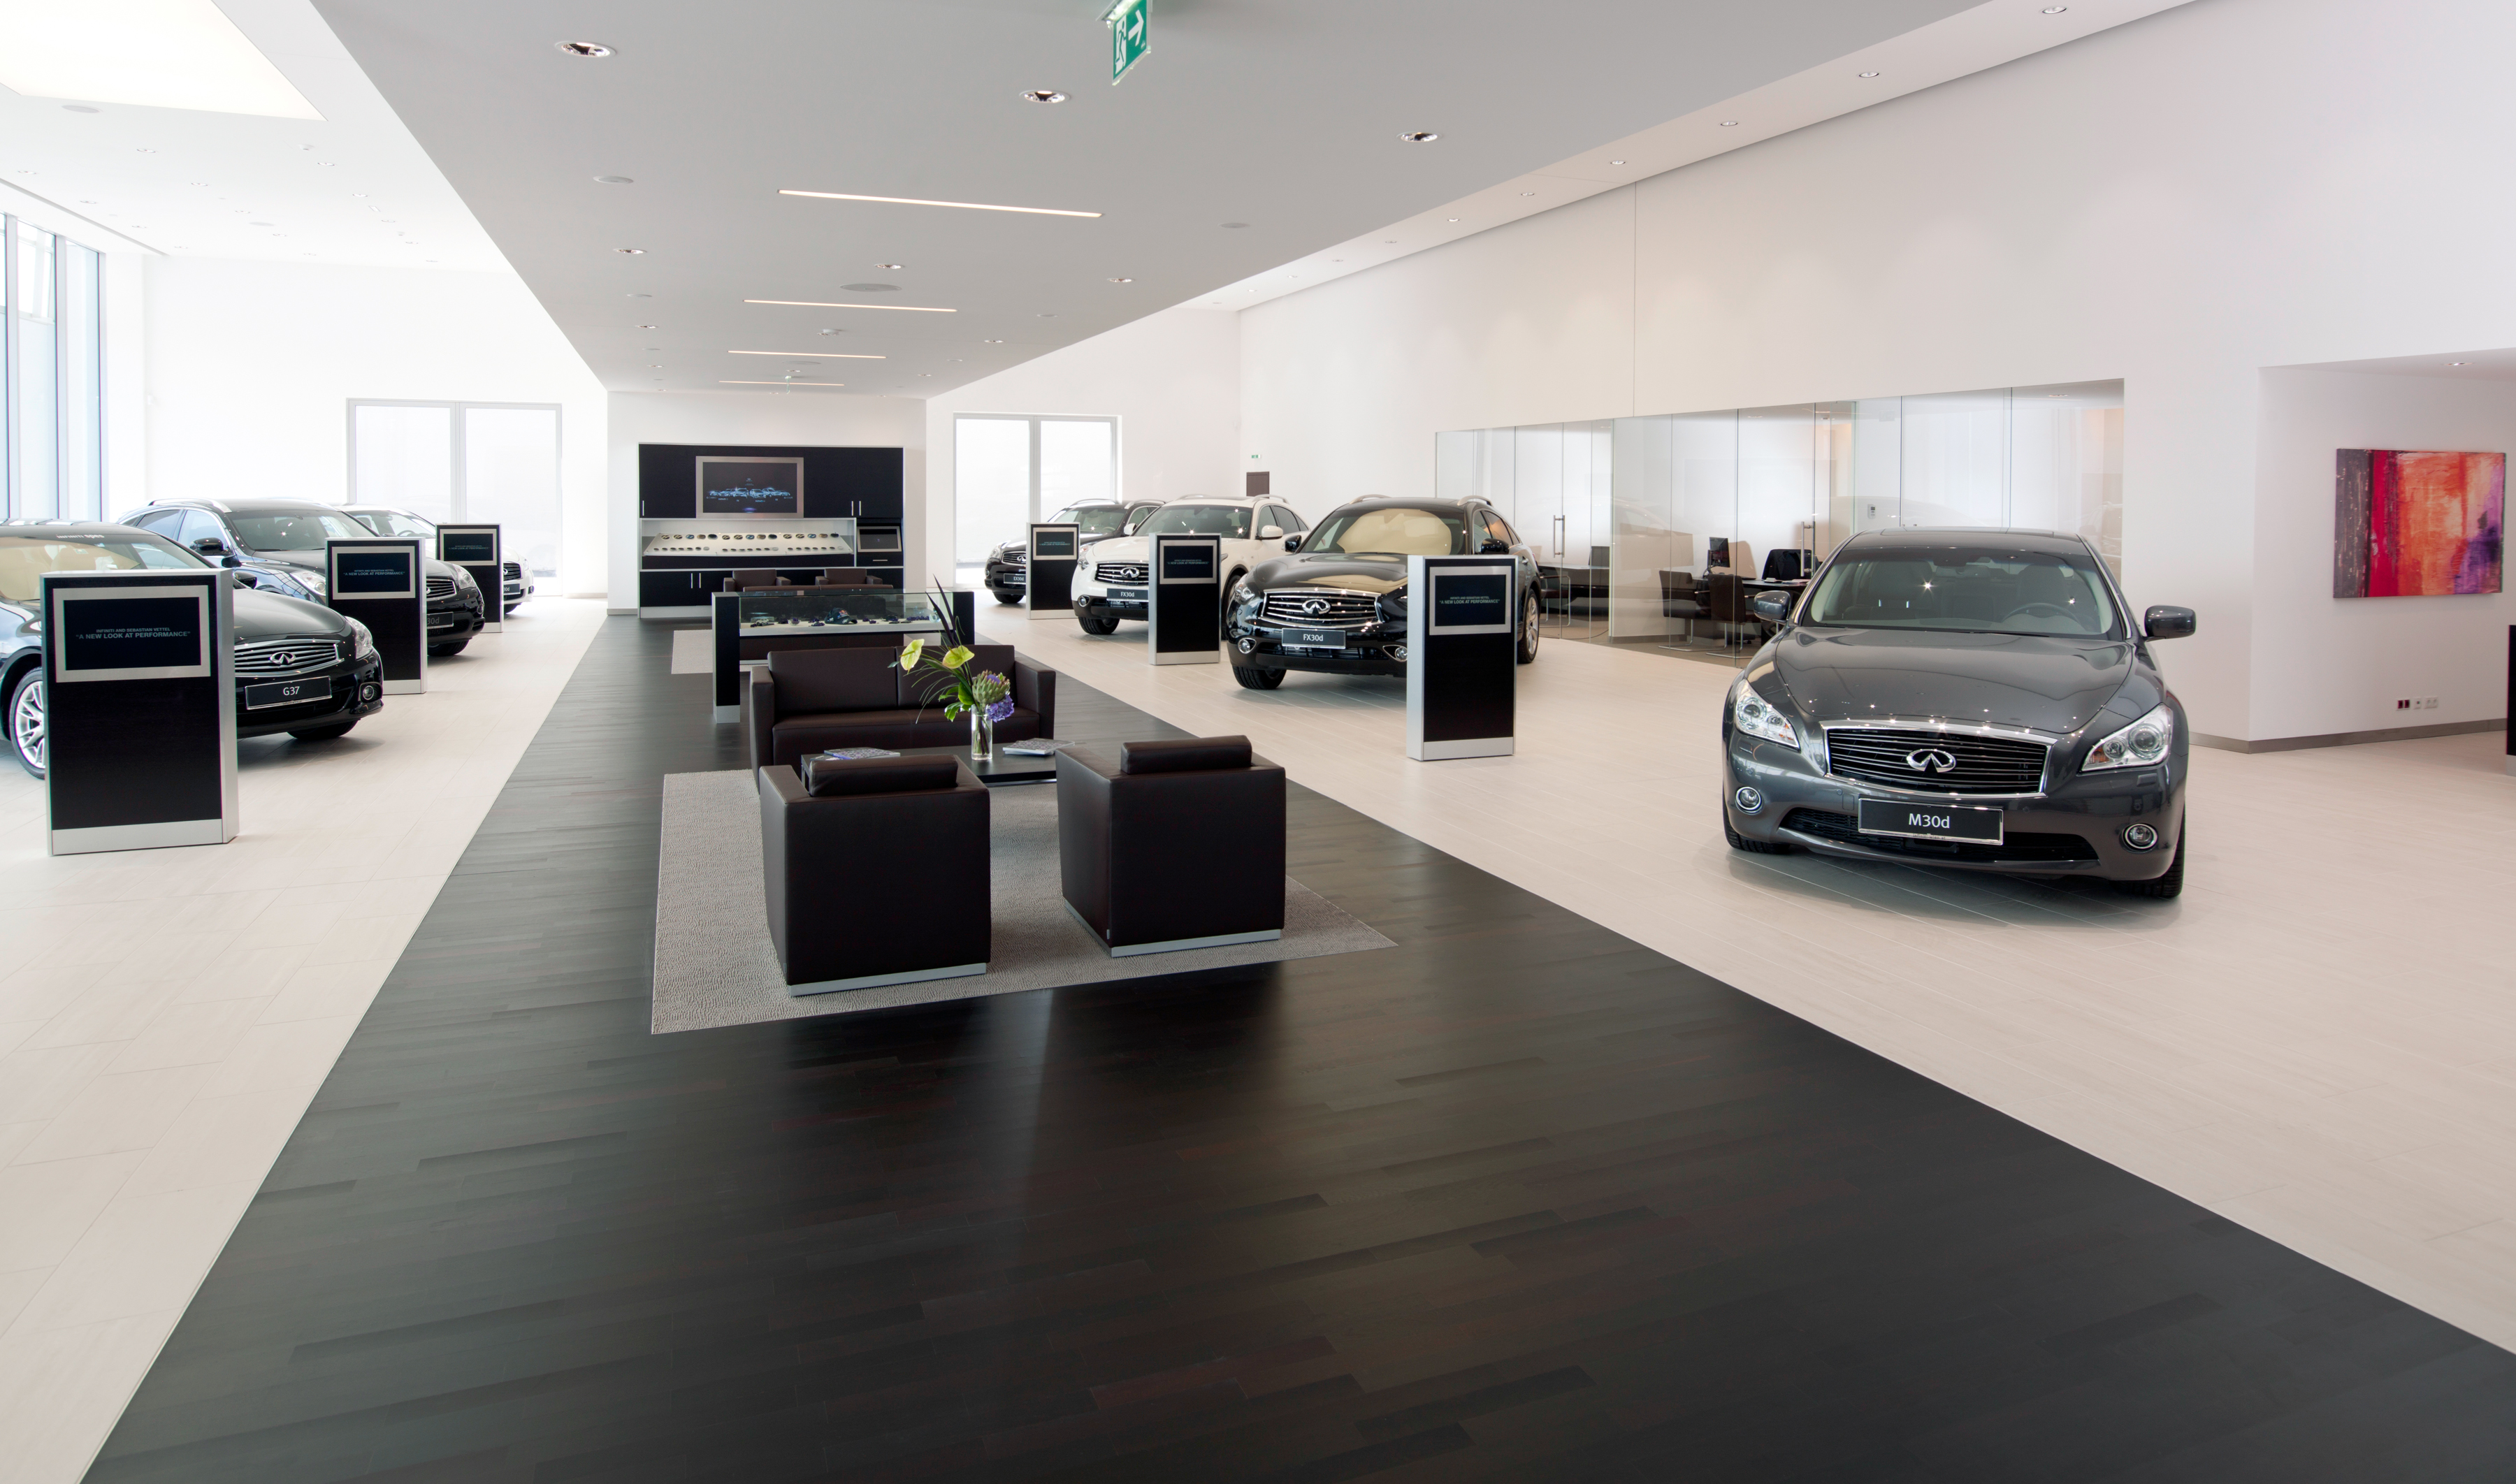 unknown car style s infiniti world largest dealership grubbs unveils infinity southlake